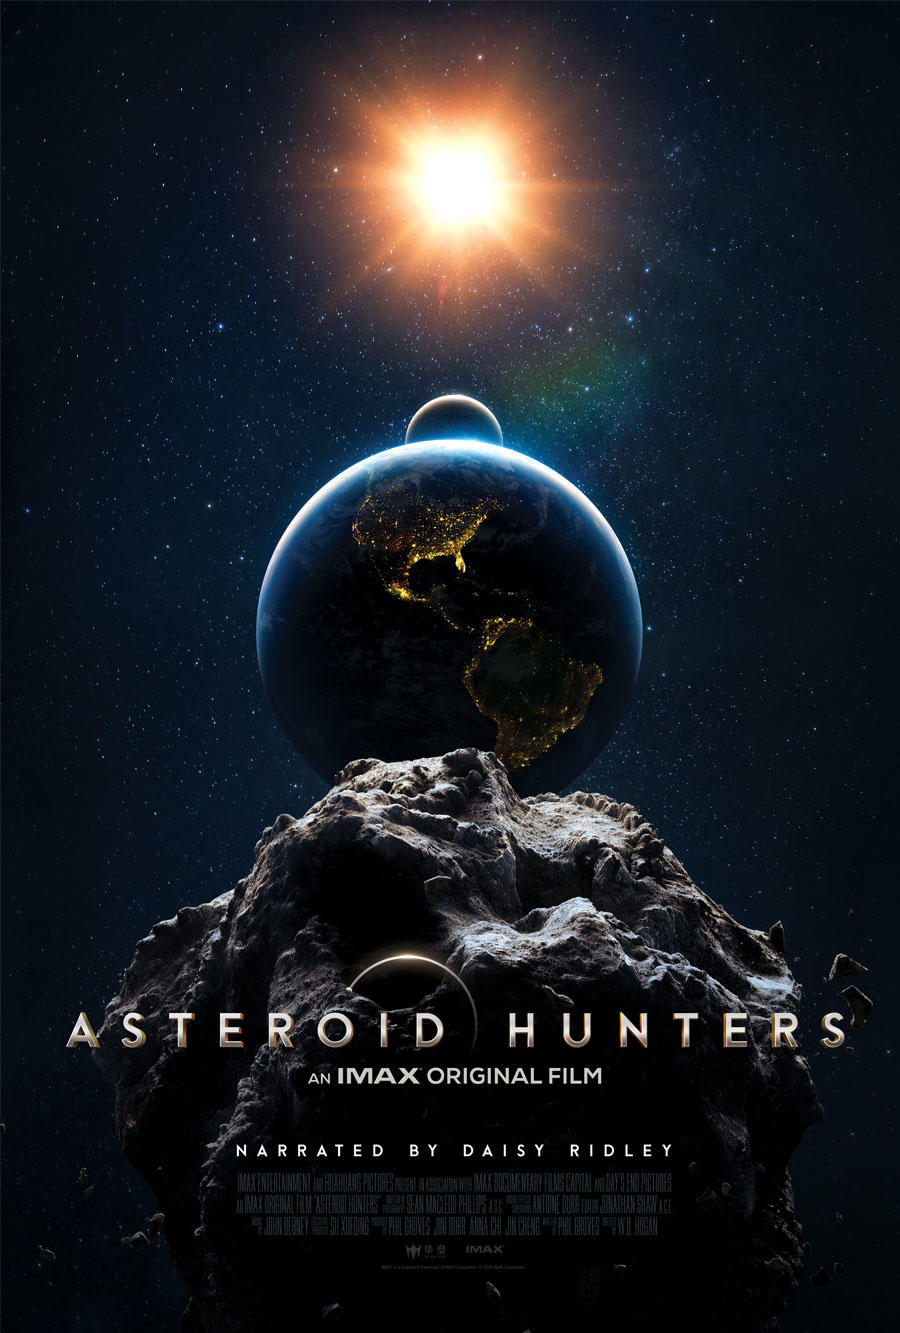 Asteroid Hunters poster art